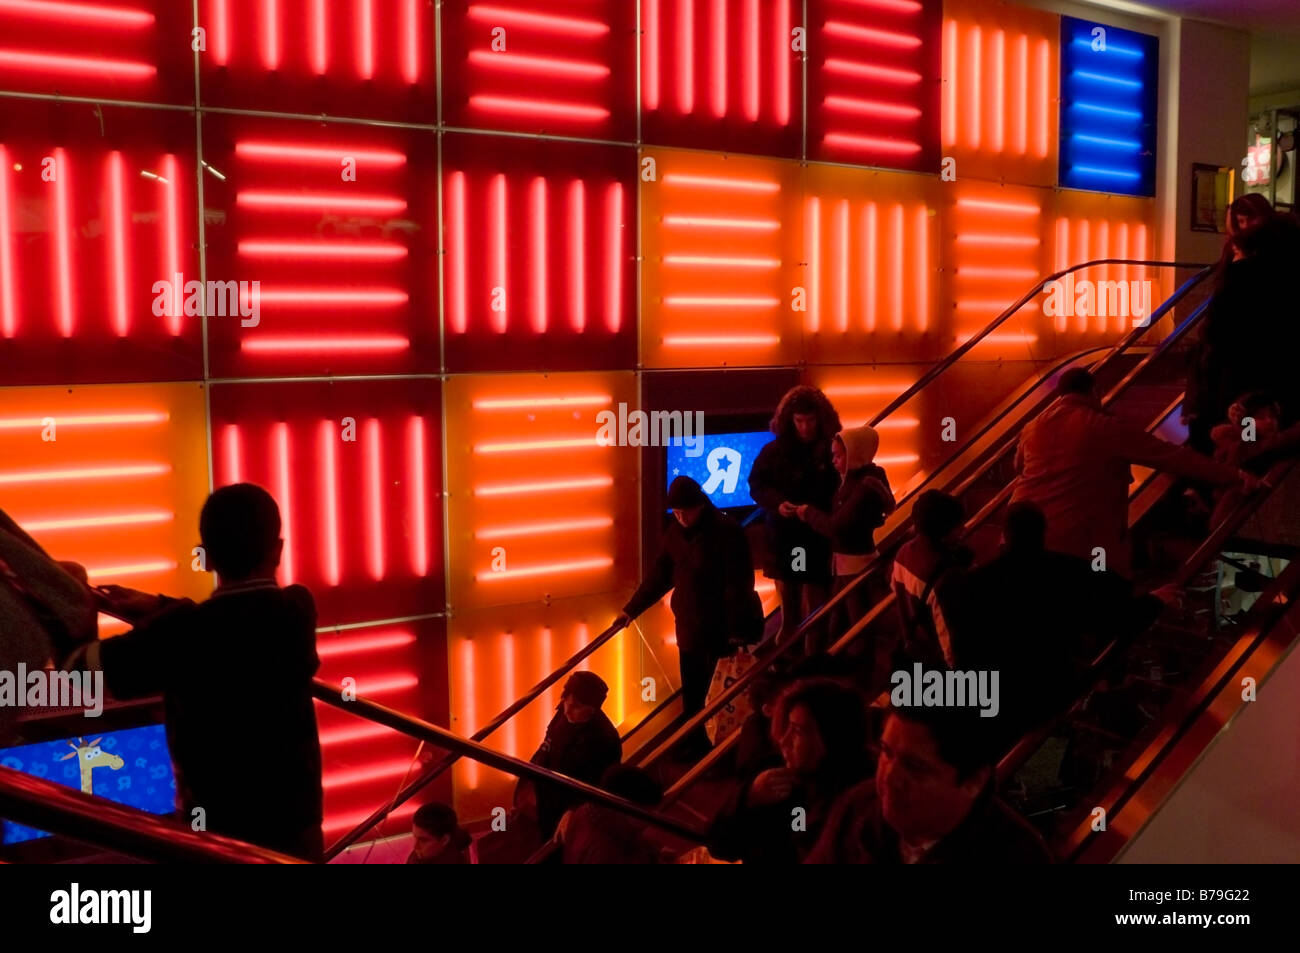 New York NY 19 December 2008 Christmas shoppers at Toys R Us in Times Square ©Stacy Walsh Rosenstock/Alamy - Stock Image